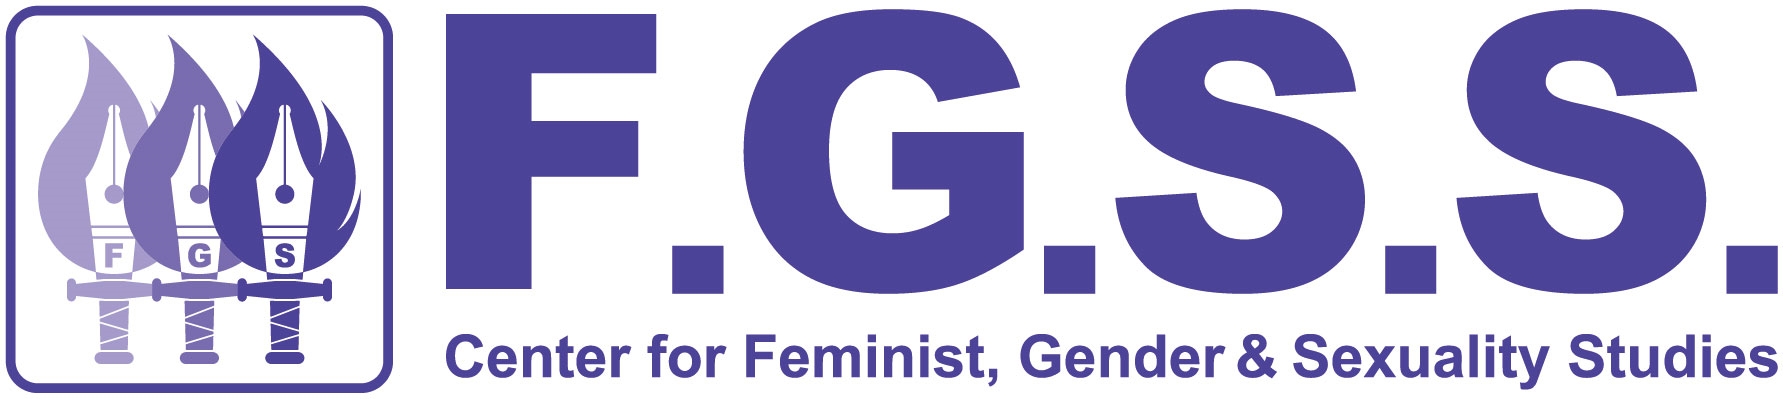 F.G.S.S (Center for Feminist, Gender, Sexuality Studies)